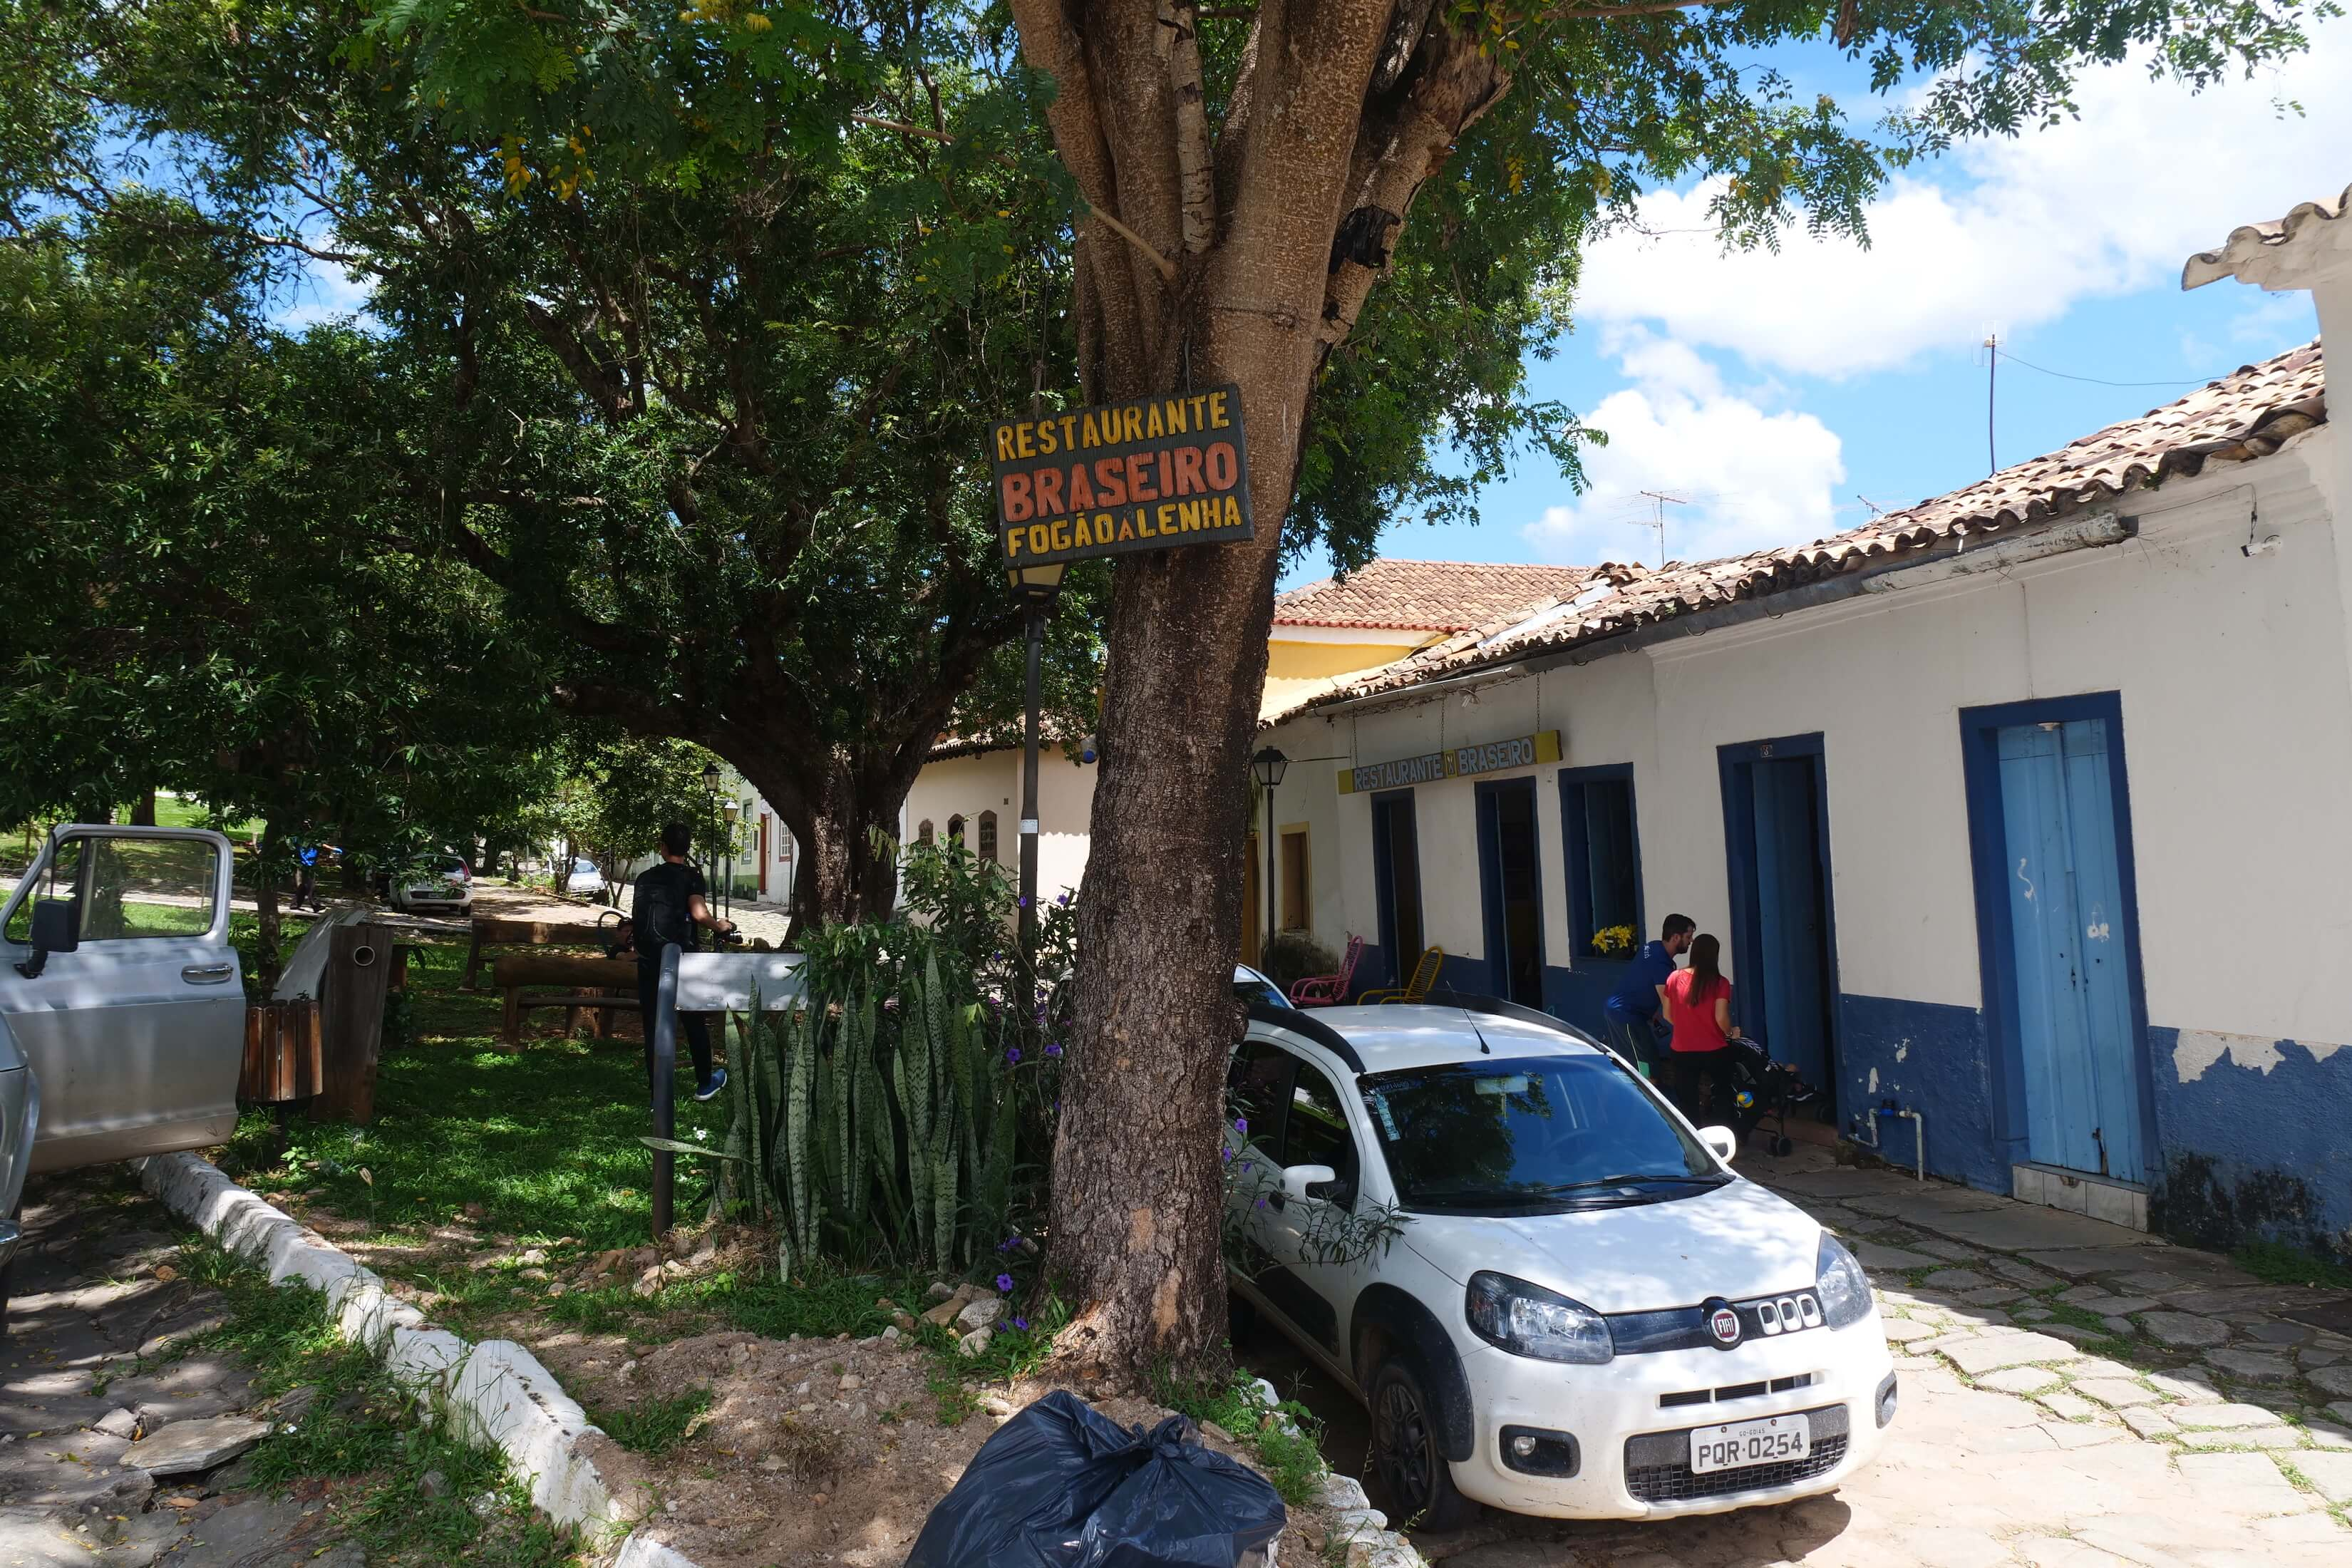 Restaurante Braseiro in Goias town serves a lunch of traditional Central Brazilian foods